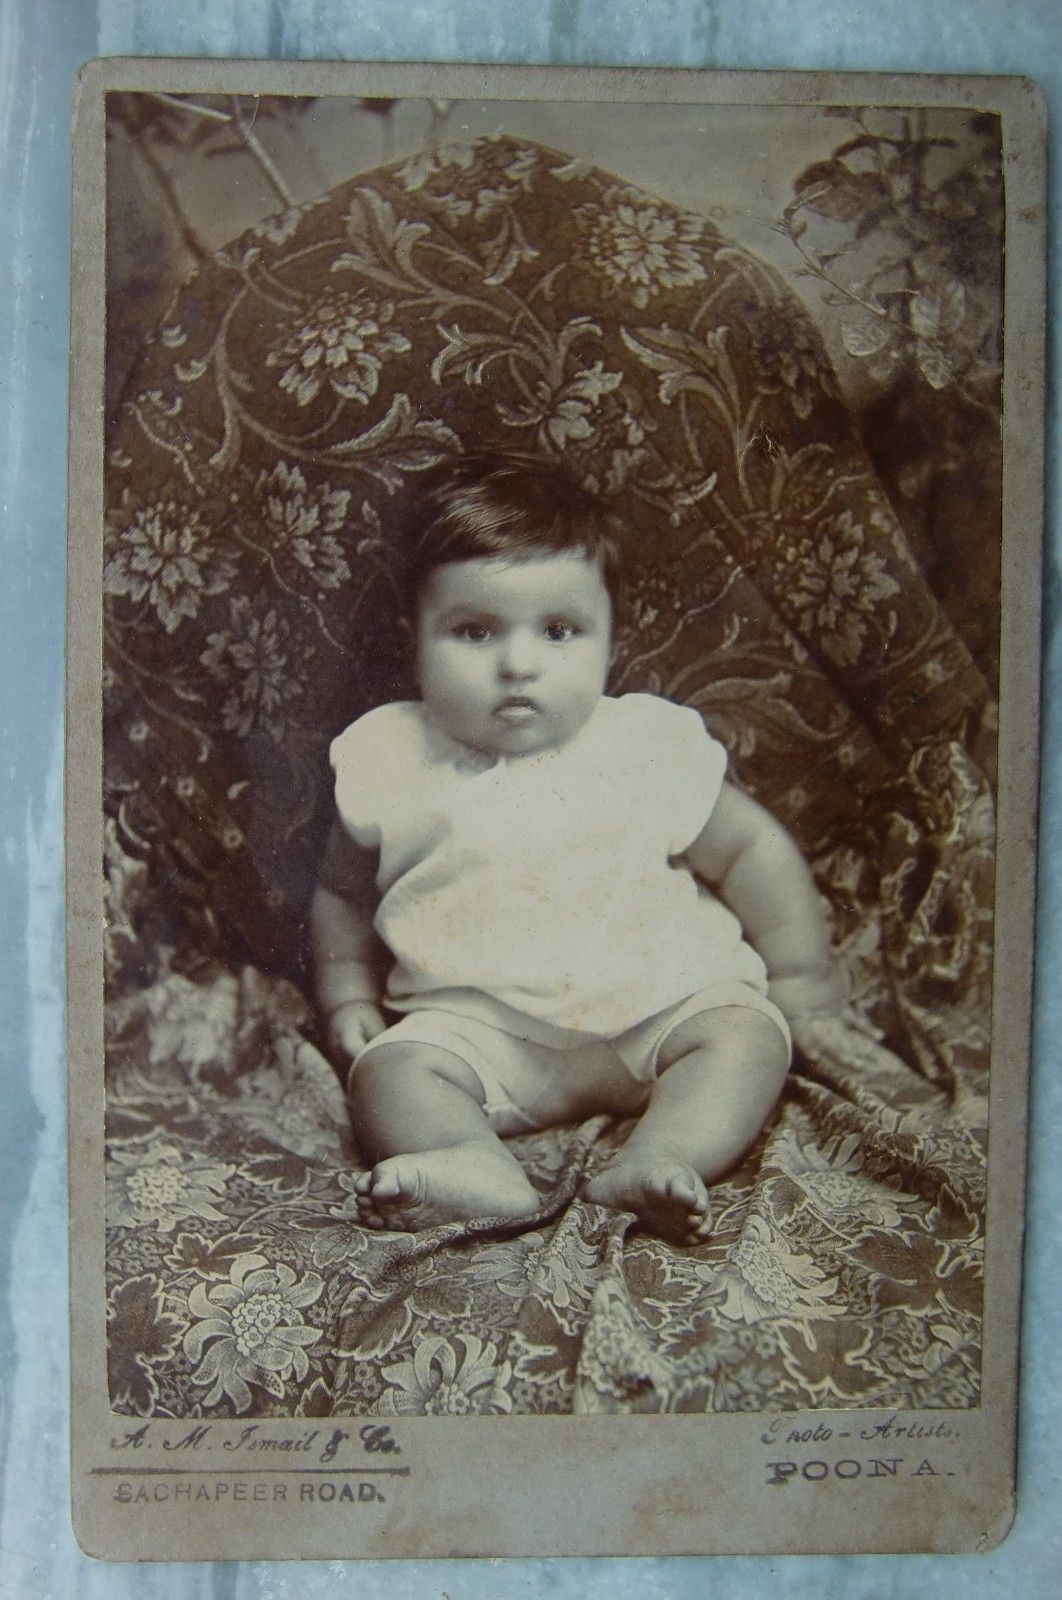 Vintage Photograph of a Child